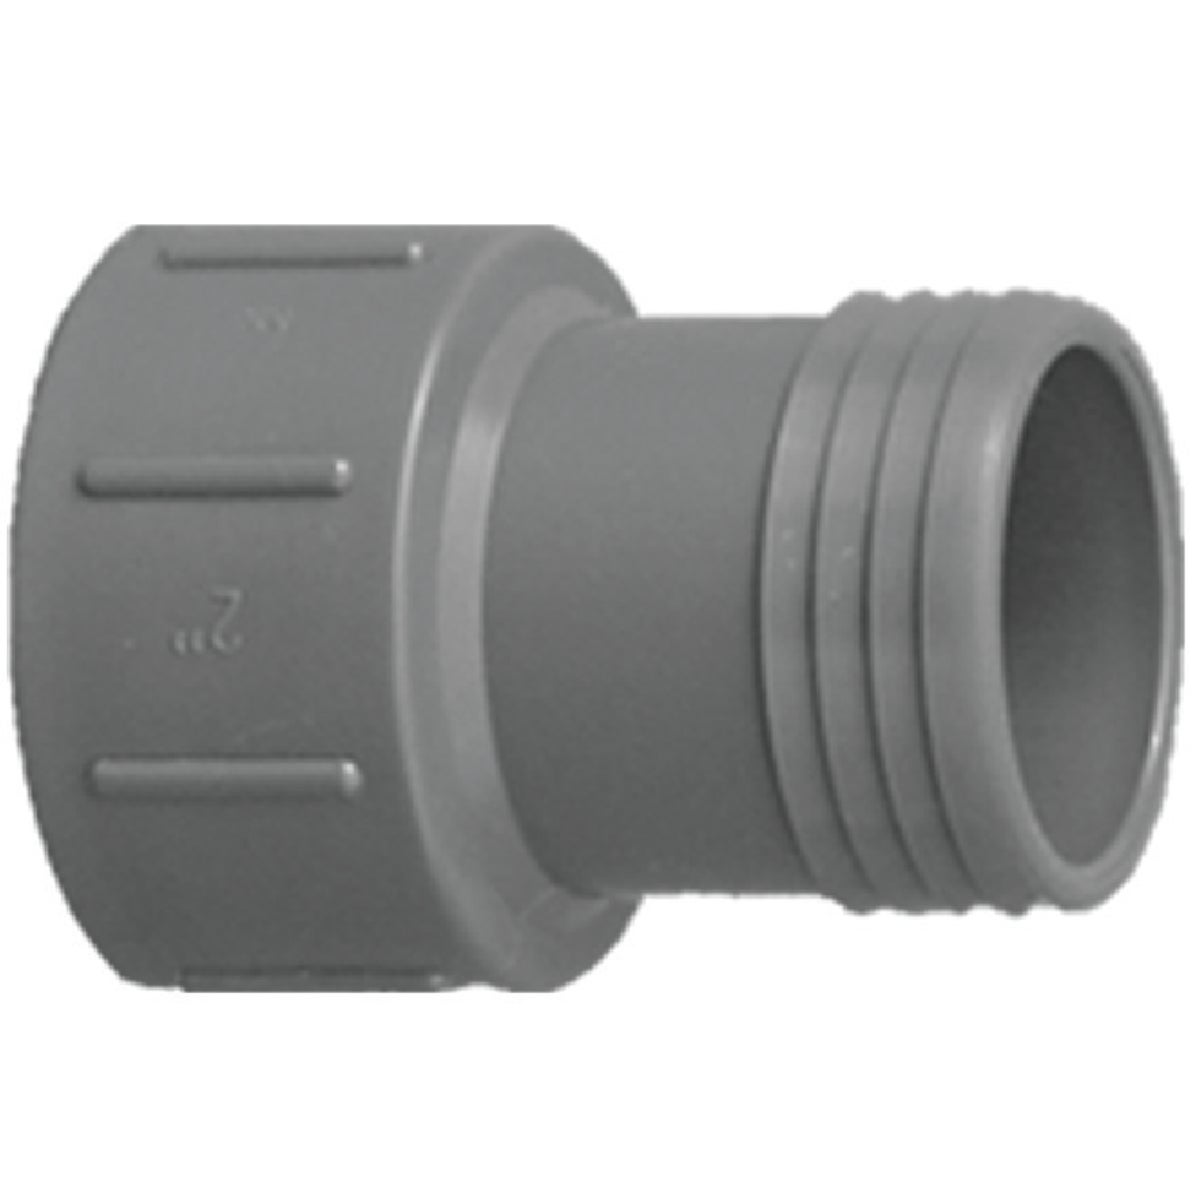 "1/2""POLY FIPXINS ADAPTER - 350305 by Genova Inc"